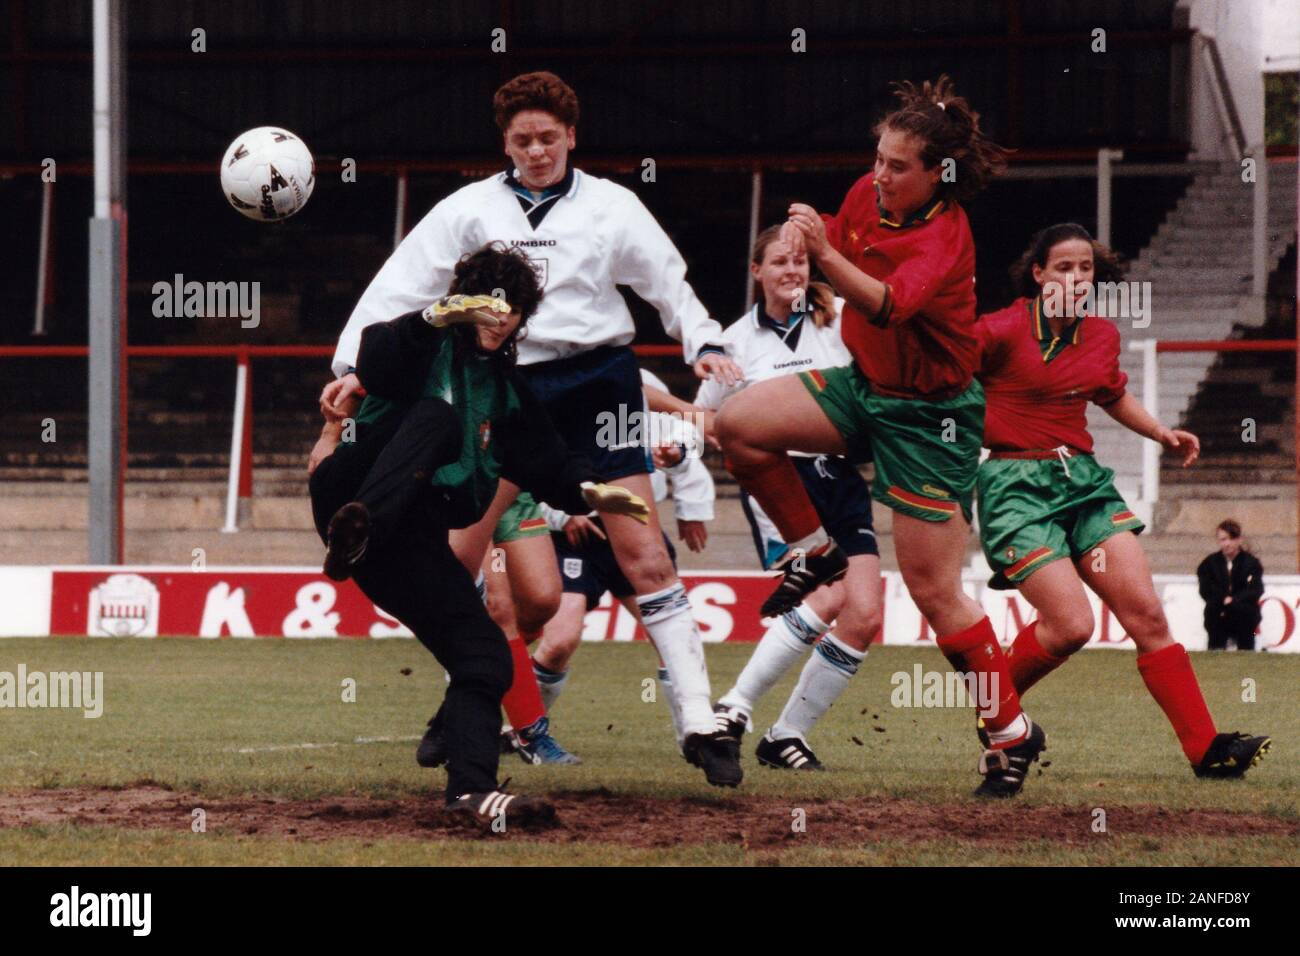 Kerry Davis of England scores a goal during England Women vs Portugal Women, European Championship Qualifying Football at Griffin Park, Brentford FC o Stock Photo